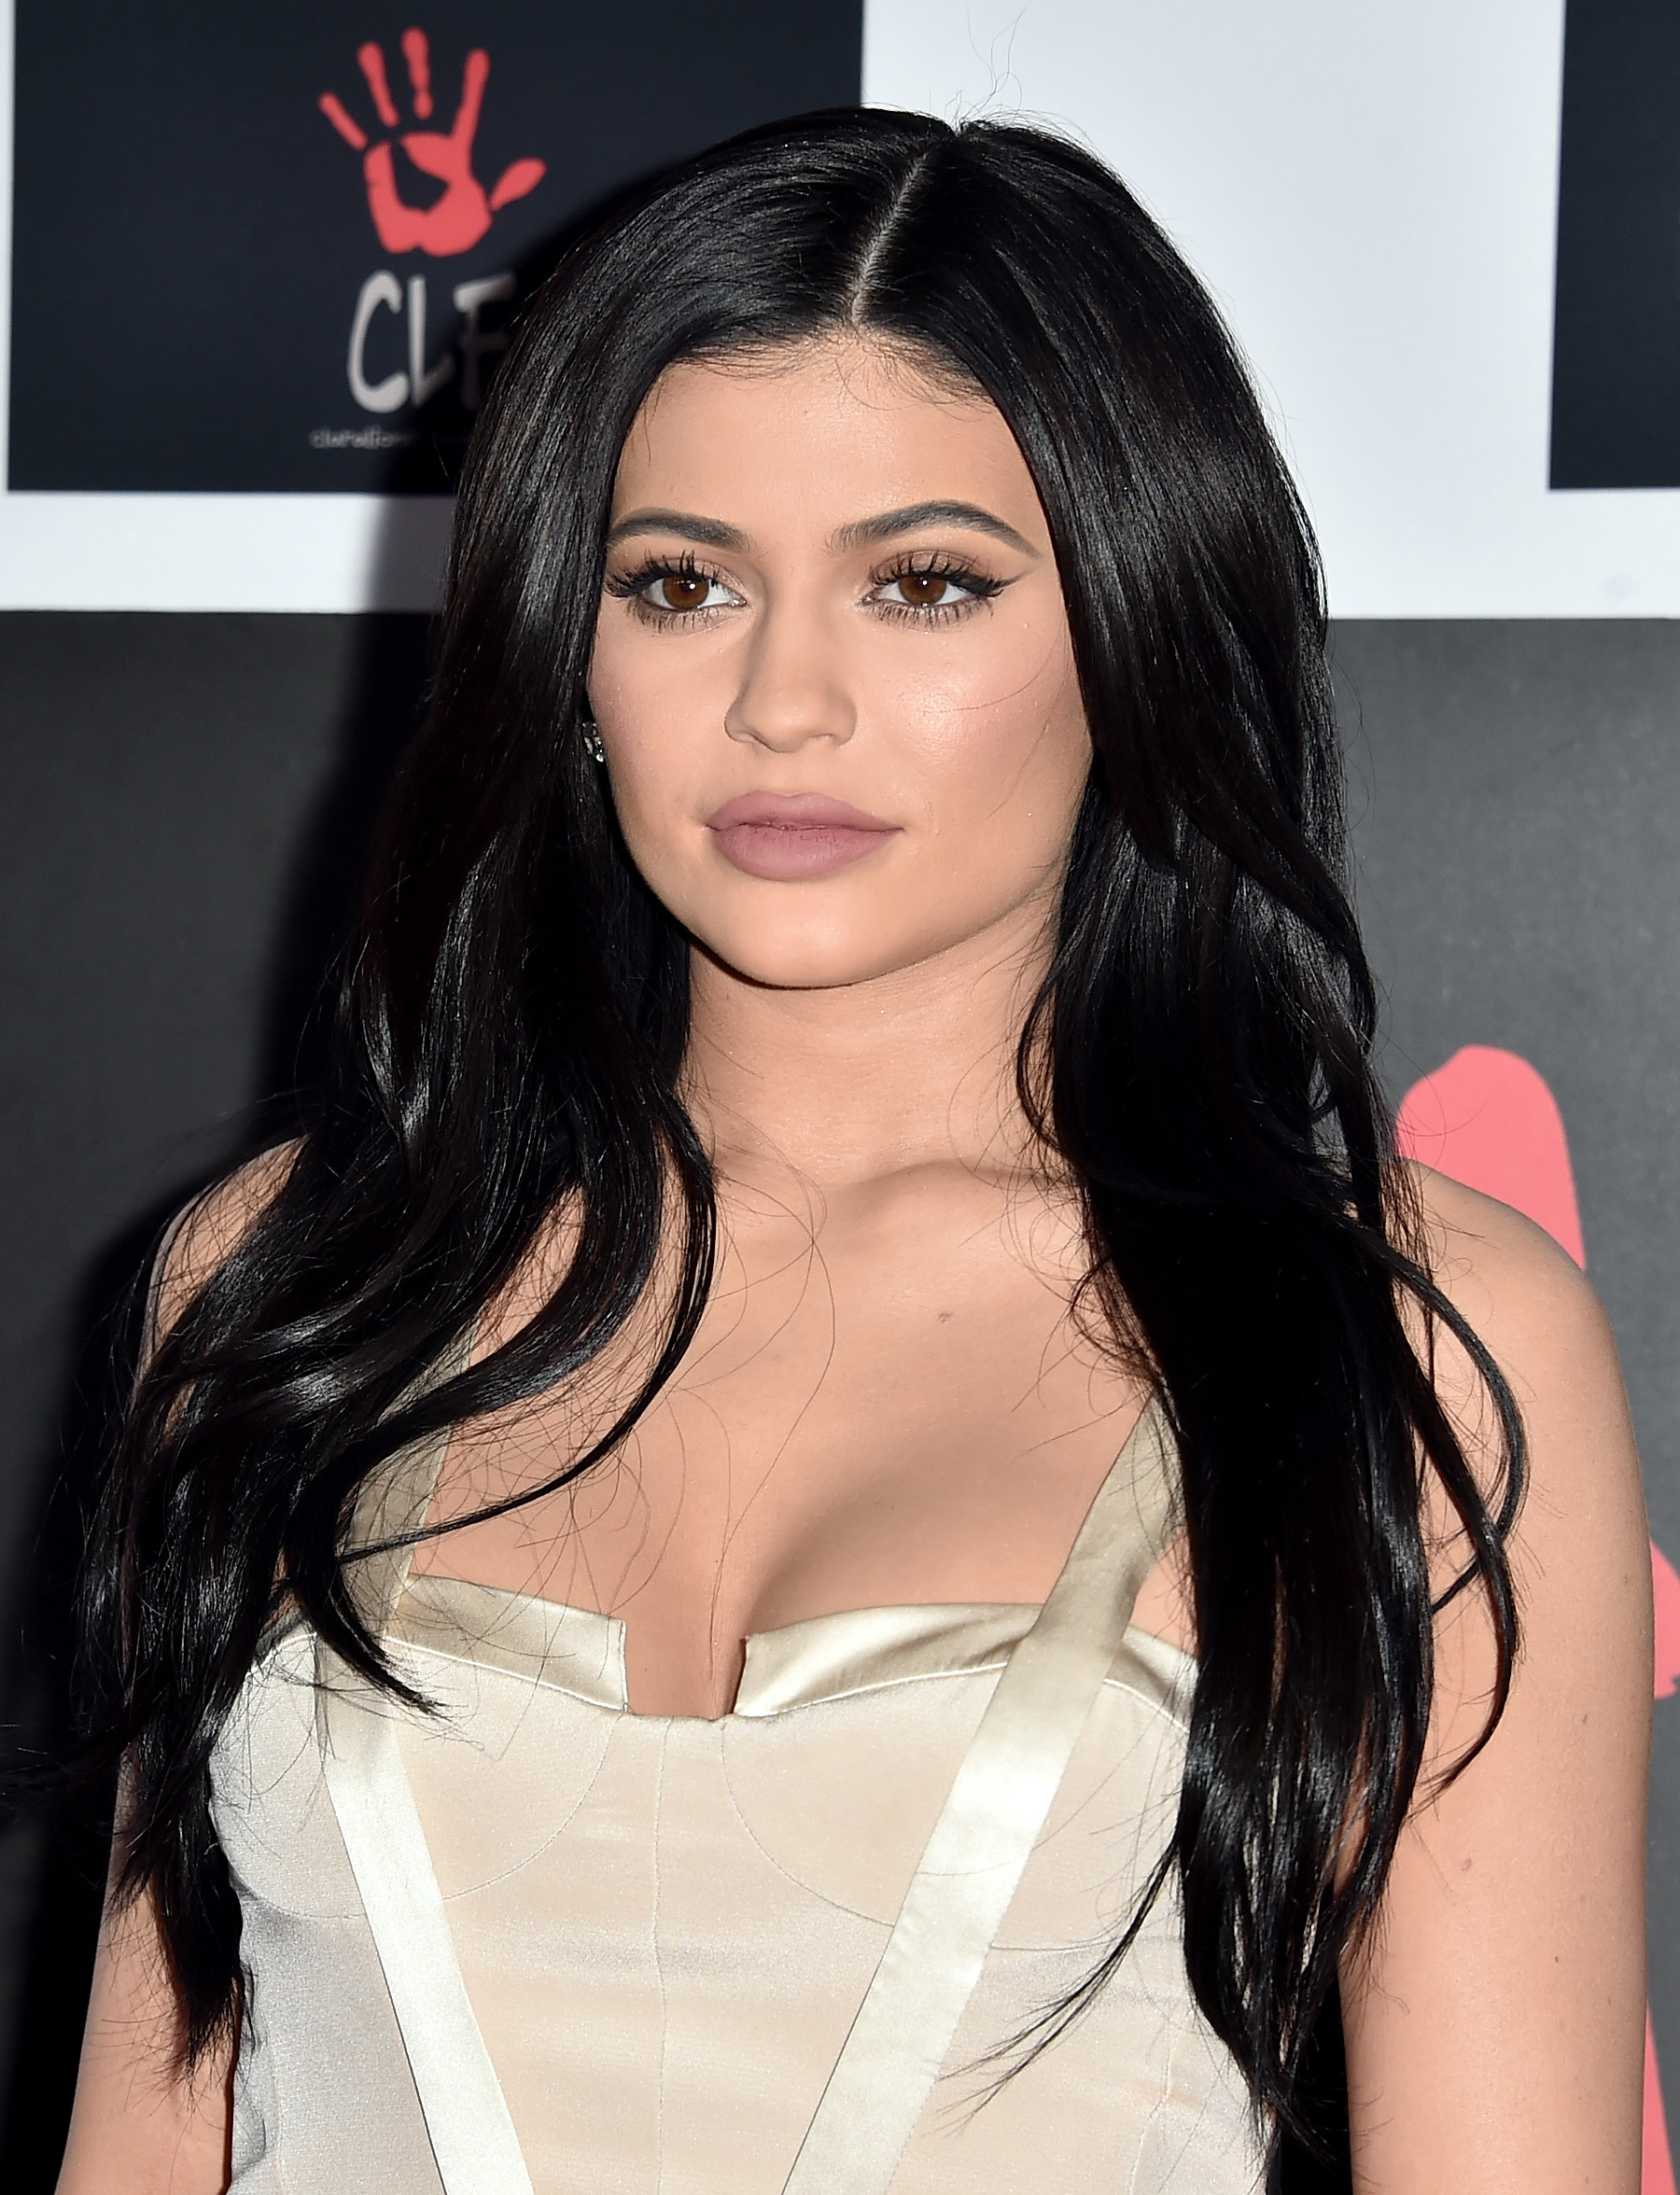 kylie jenner - photo #22